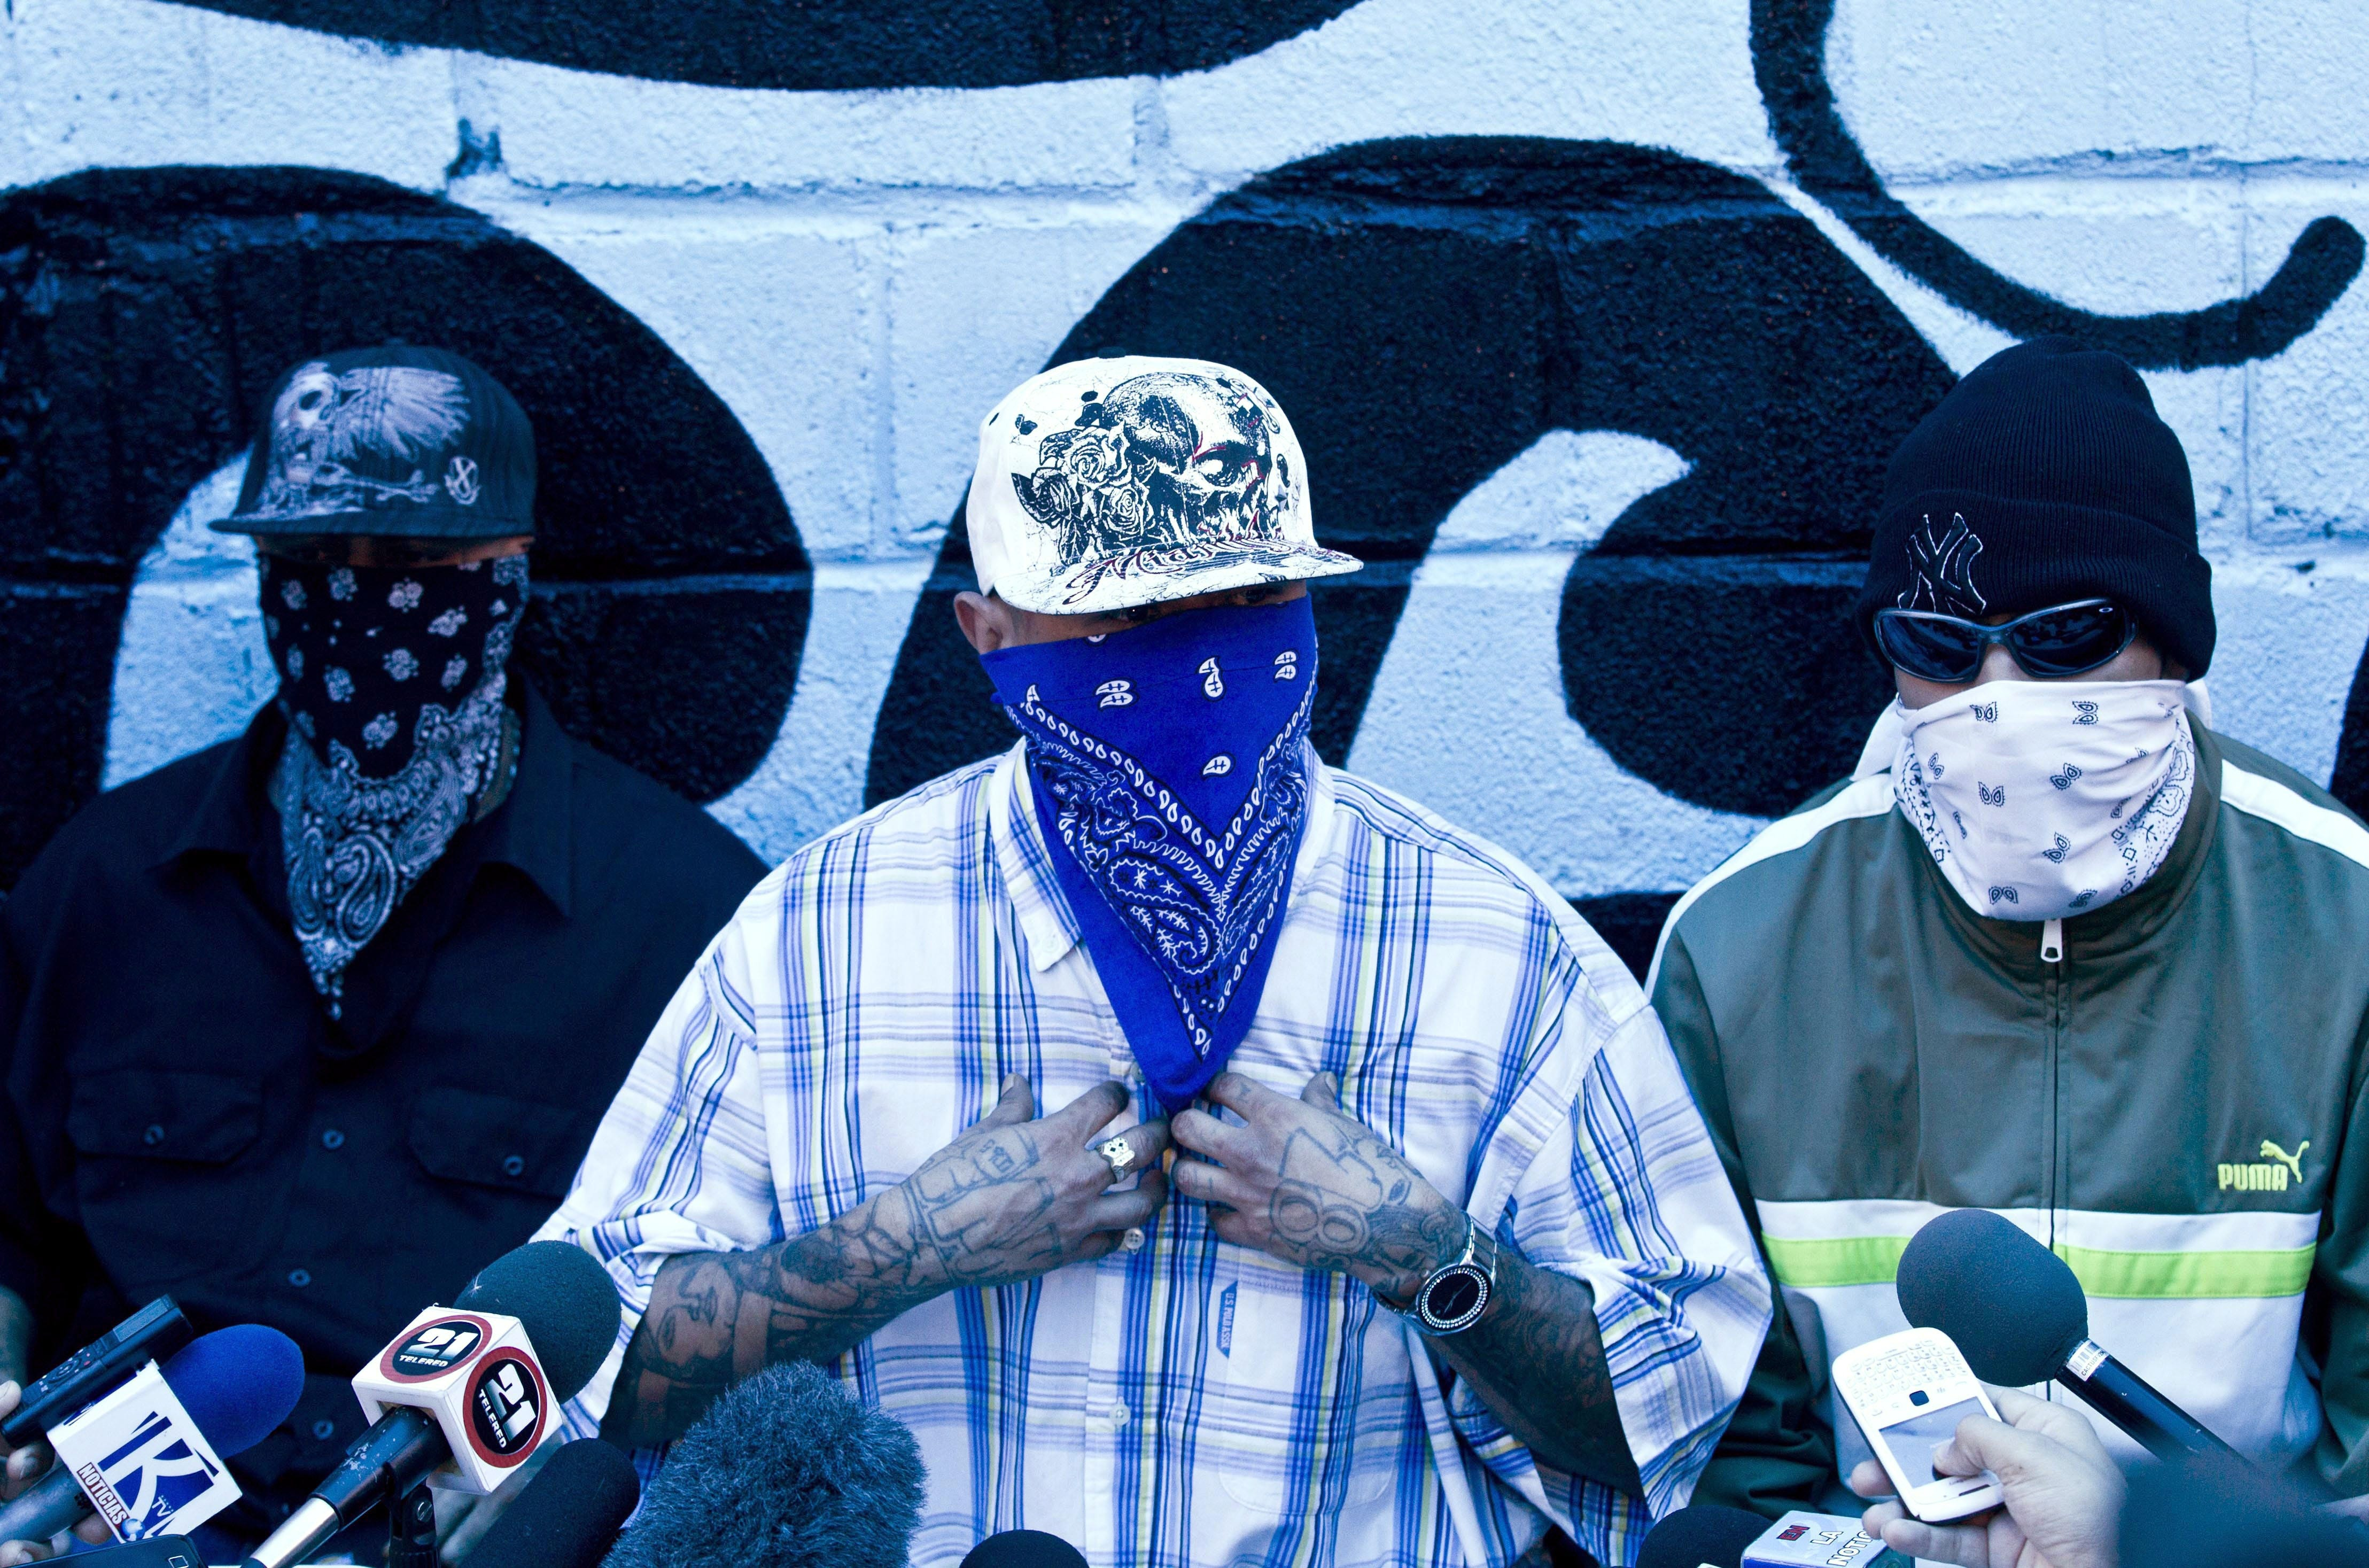 violence in gangs The police are out day and night, sweeping neighborhoods paralyzed by gang violence we were with them as they arrested a man, who they said was a member of ms-13, short for mara salvatrucha.